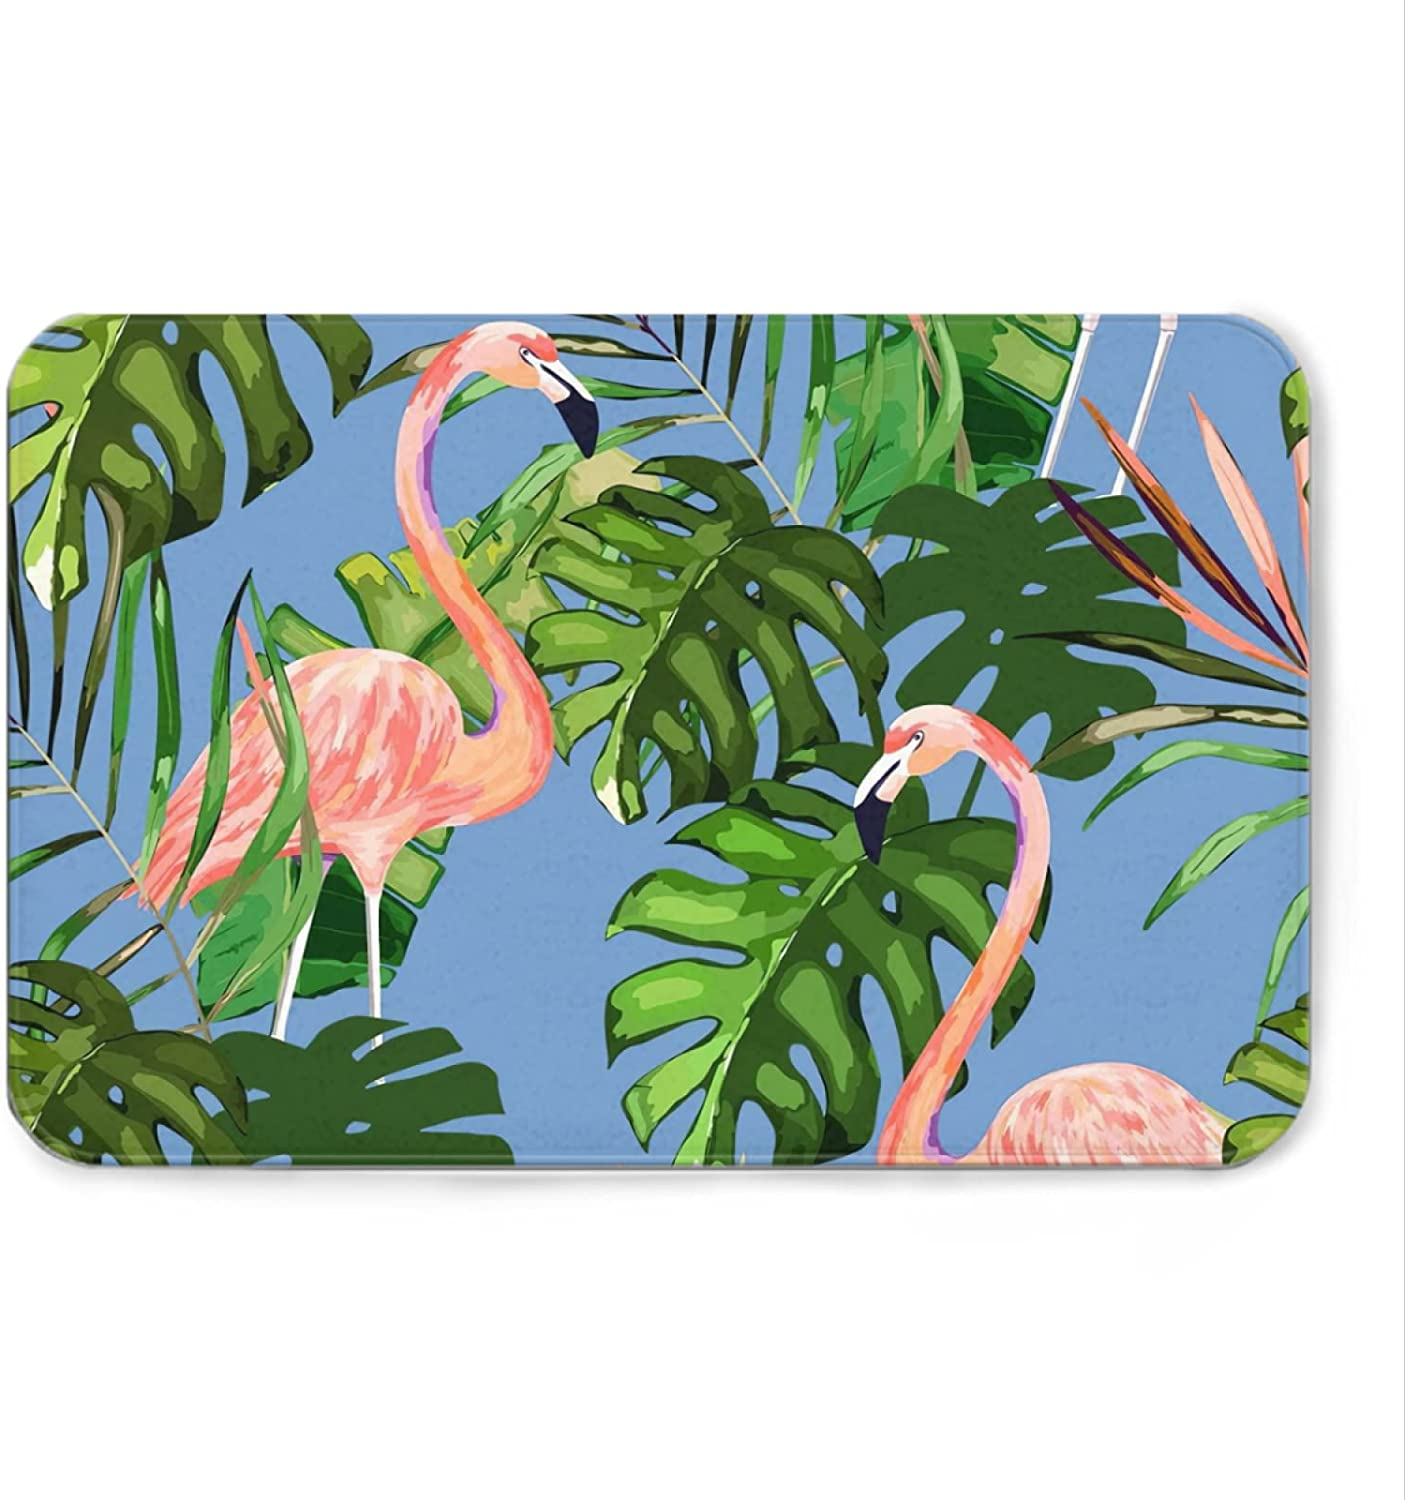 Free shipping on posting reviews Flamingo online shopping Welcome Mat Bath Rugs Fl Doormat Bathroom Non-Slip